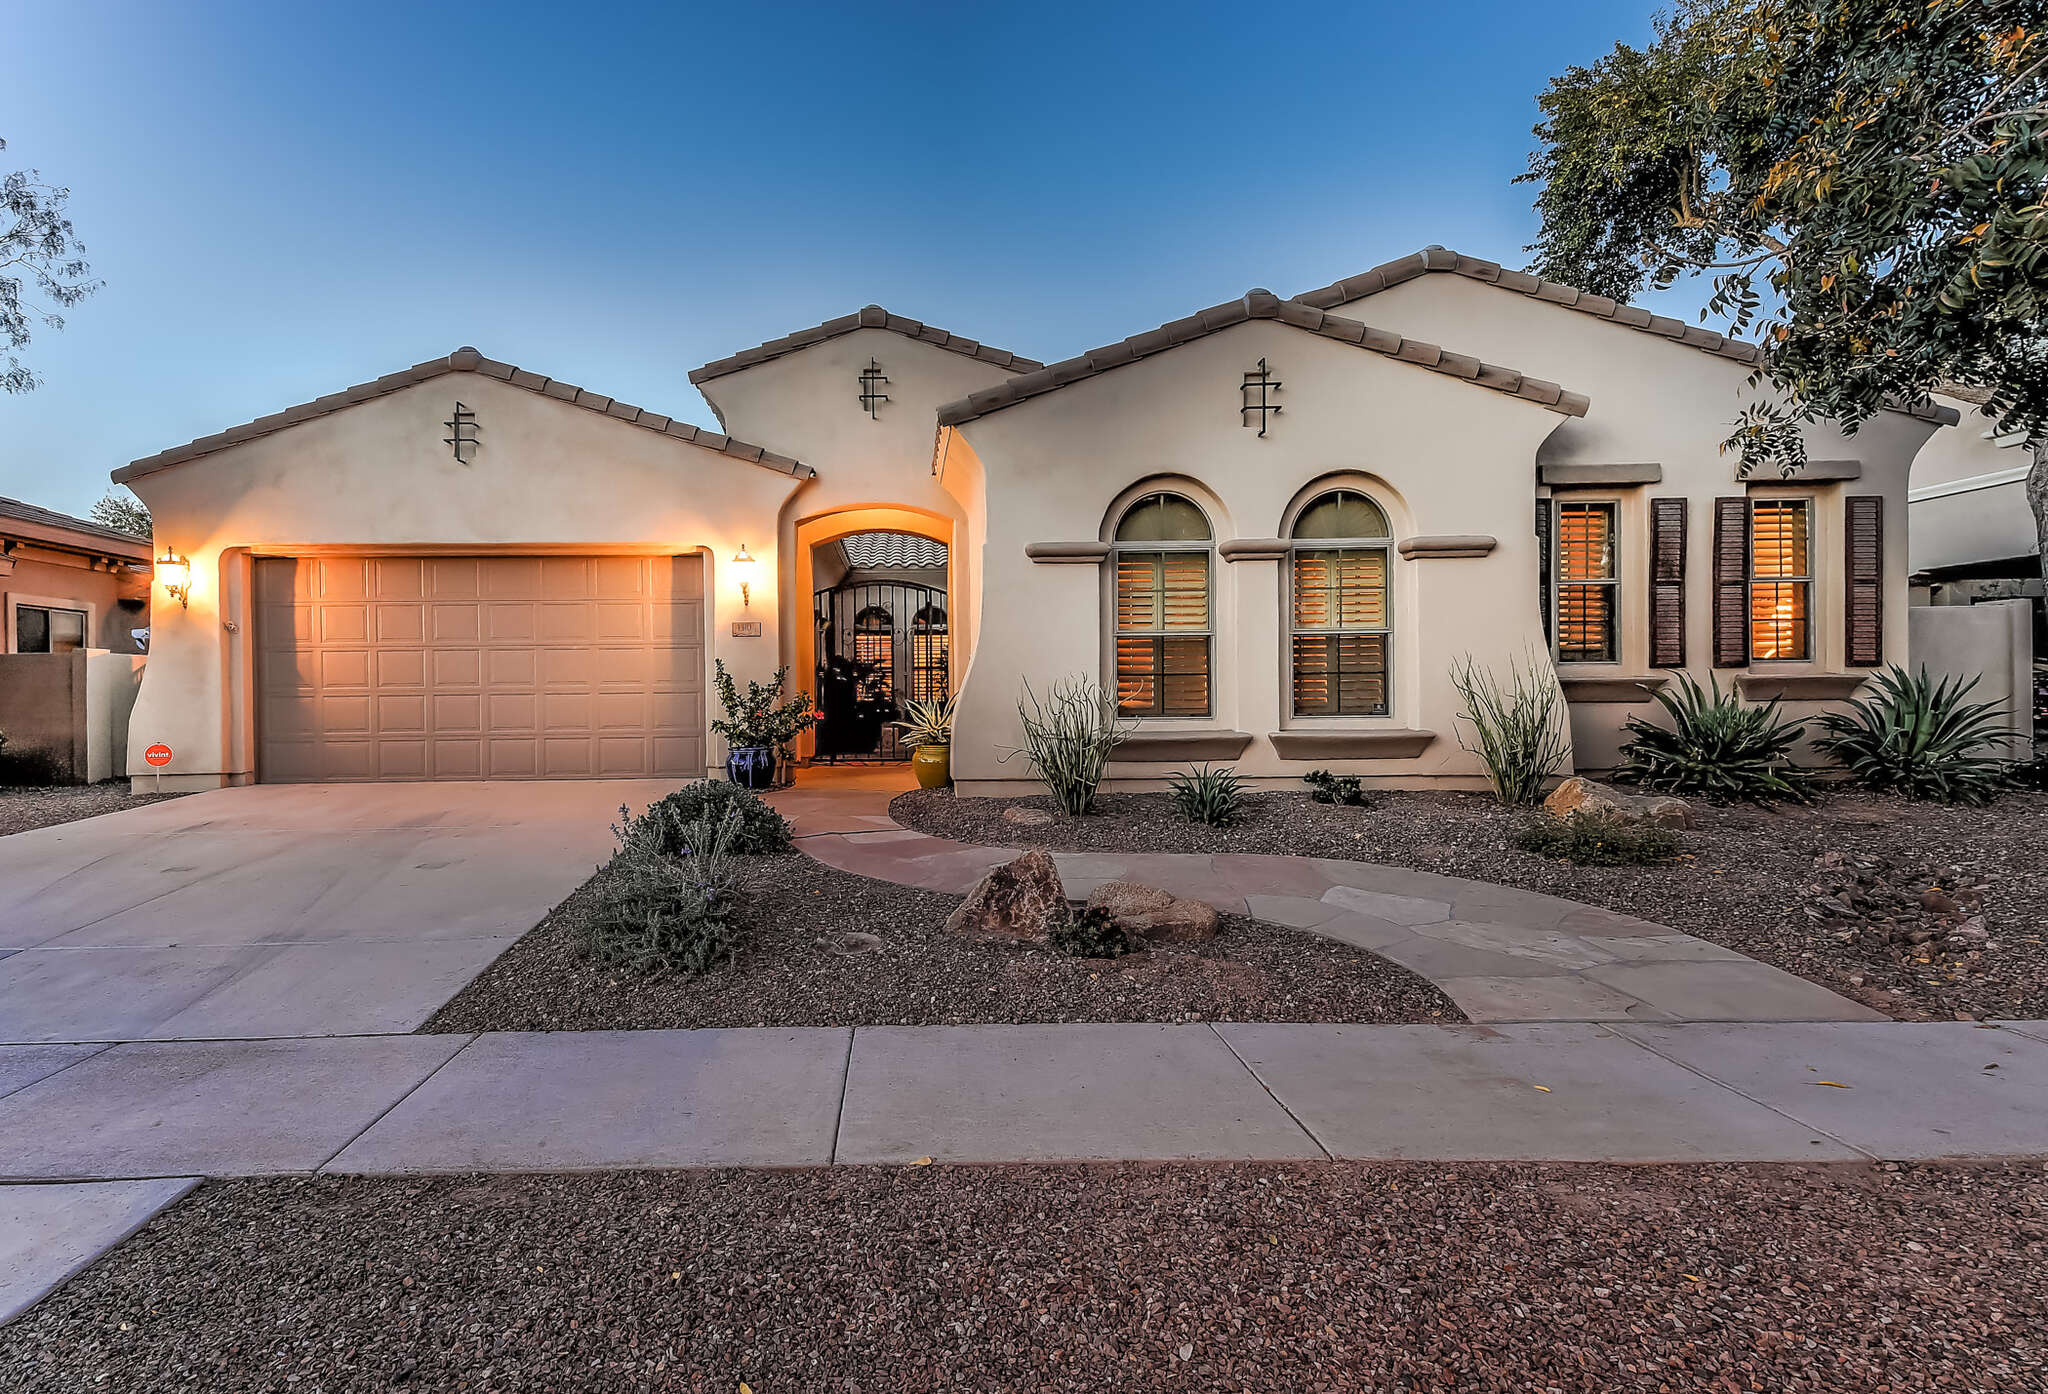 Single Family for Sale at 4310 E Santa Fe Ln Gilbert, Arizona 85297 United States